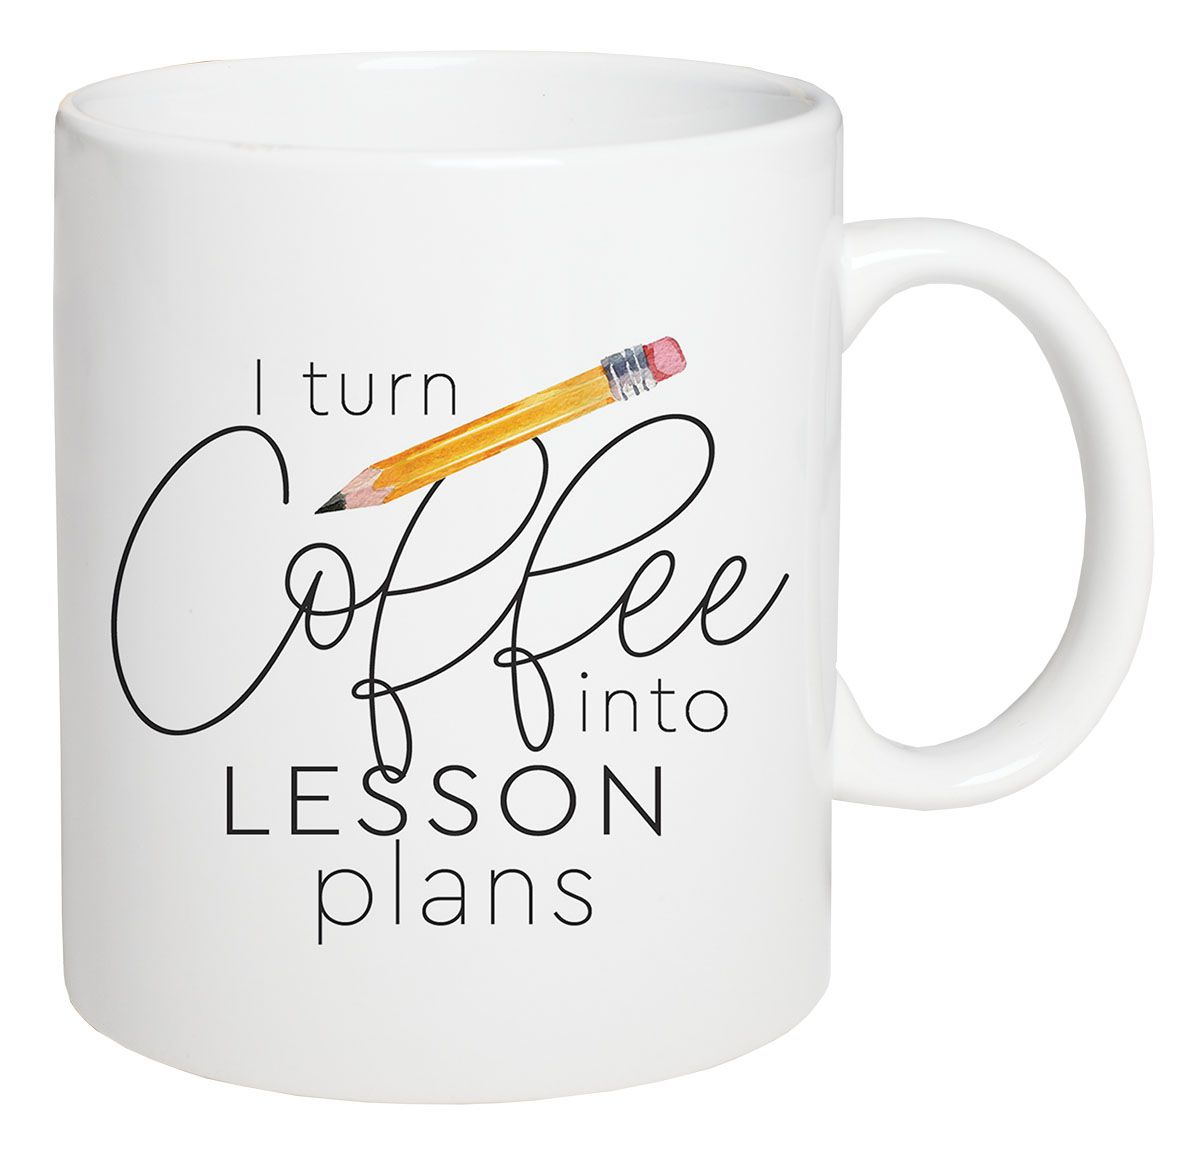 I Turn Coffee Into Lesson Plans Coffee Mug